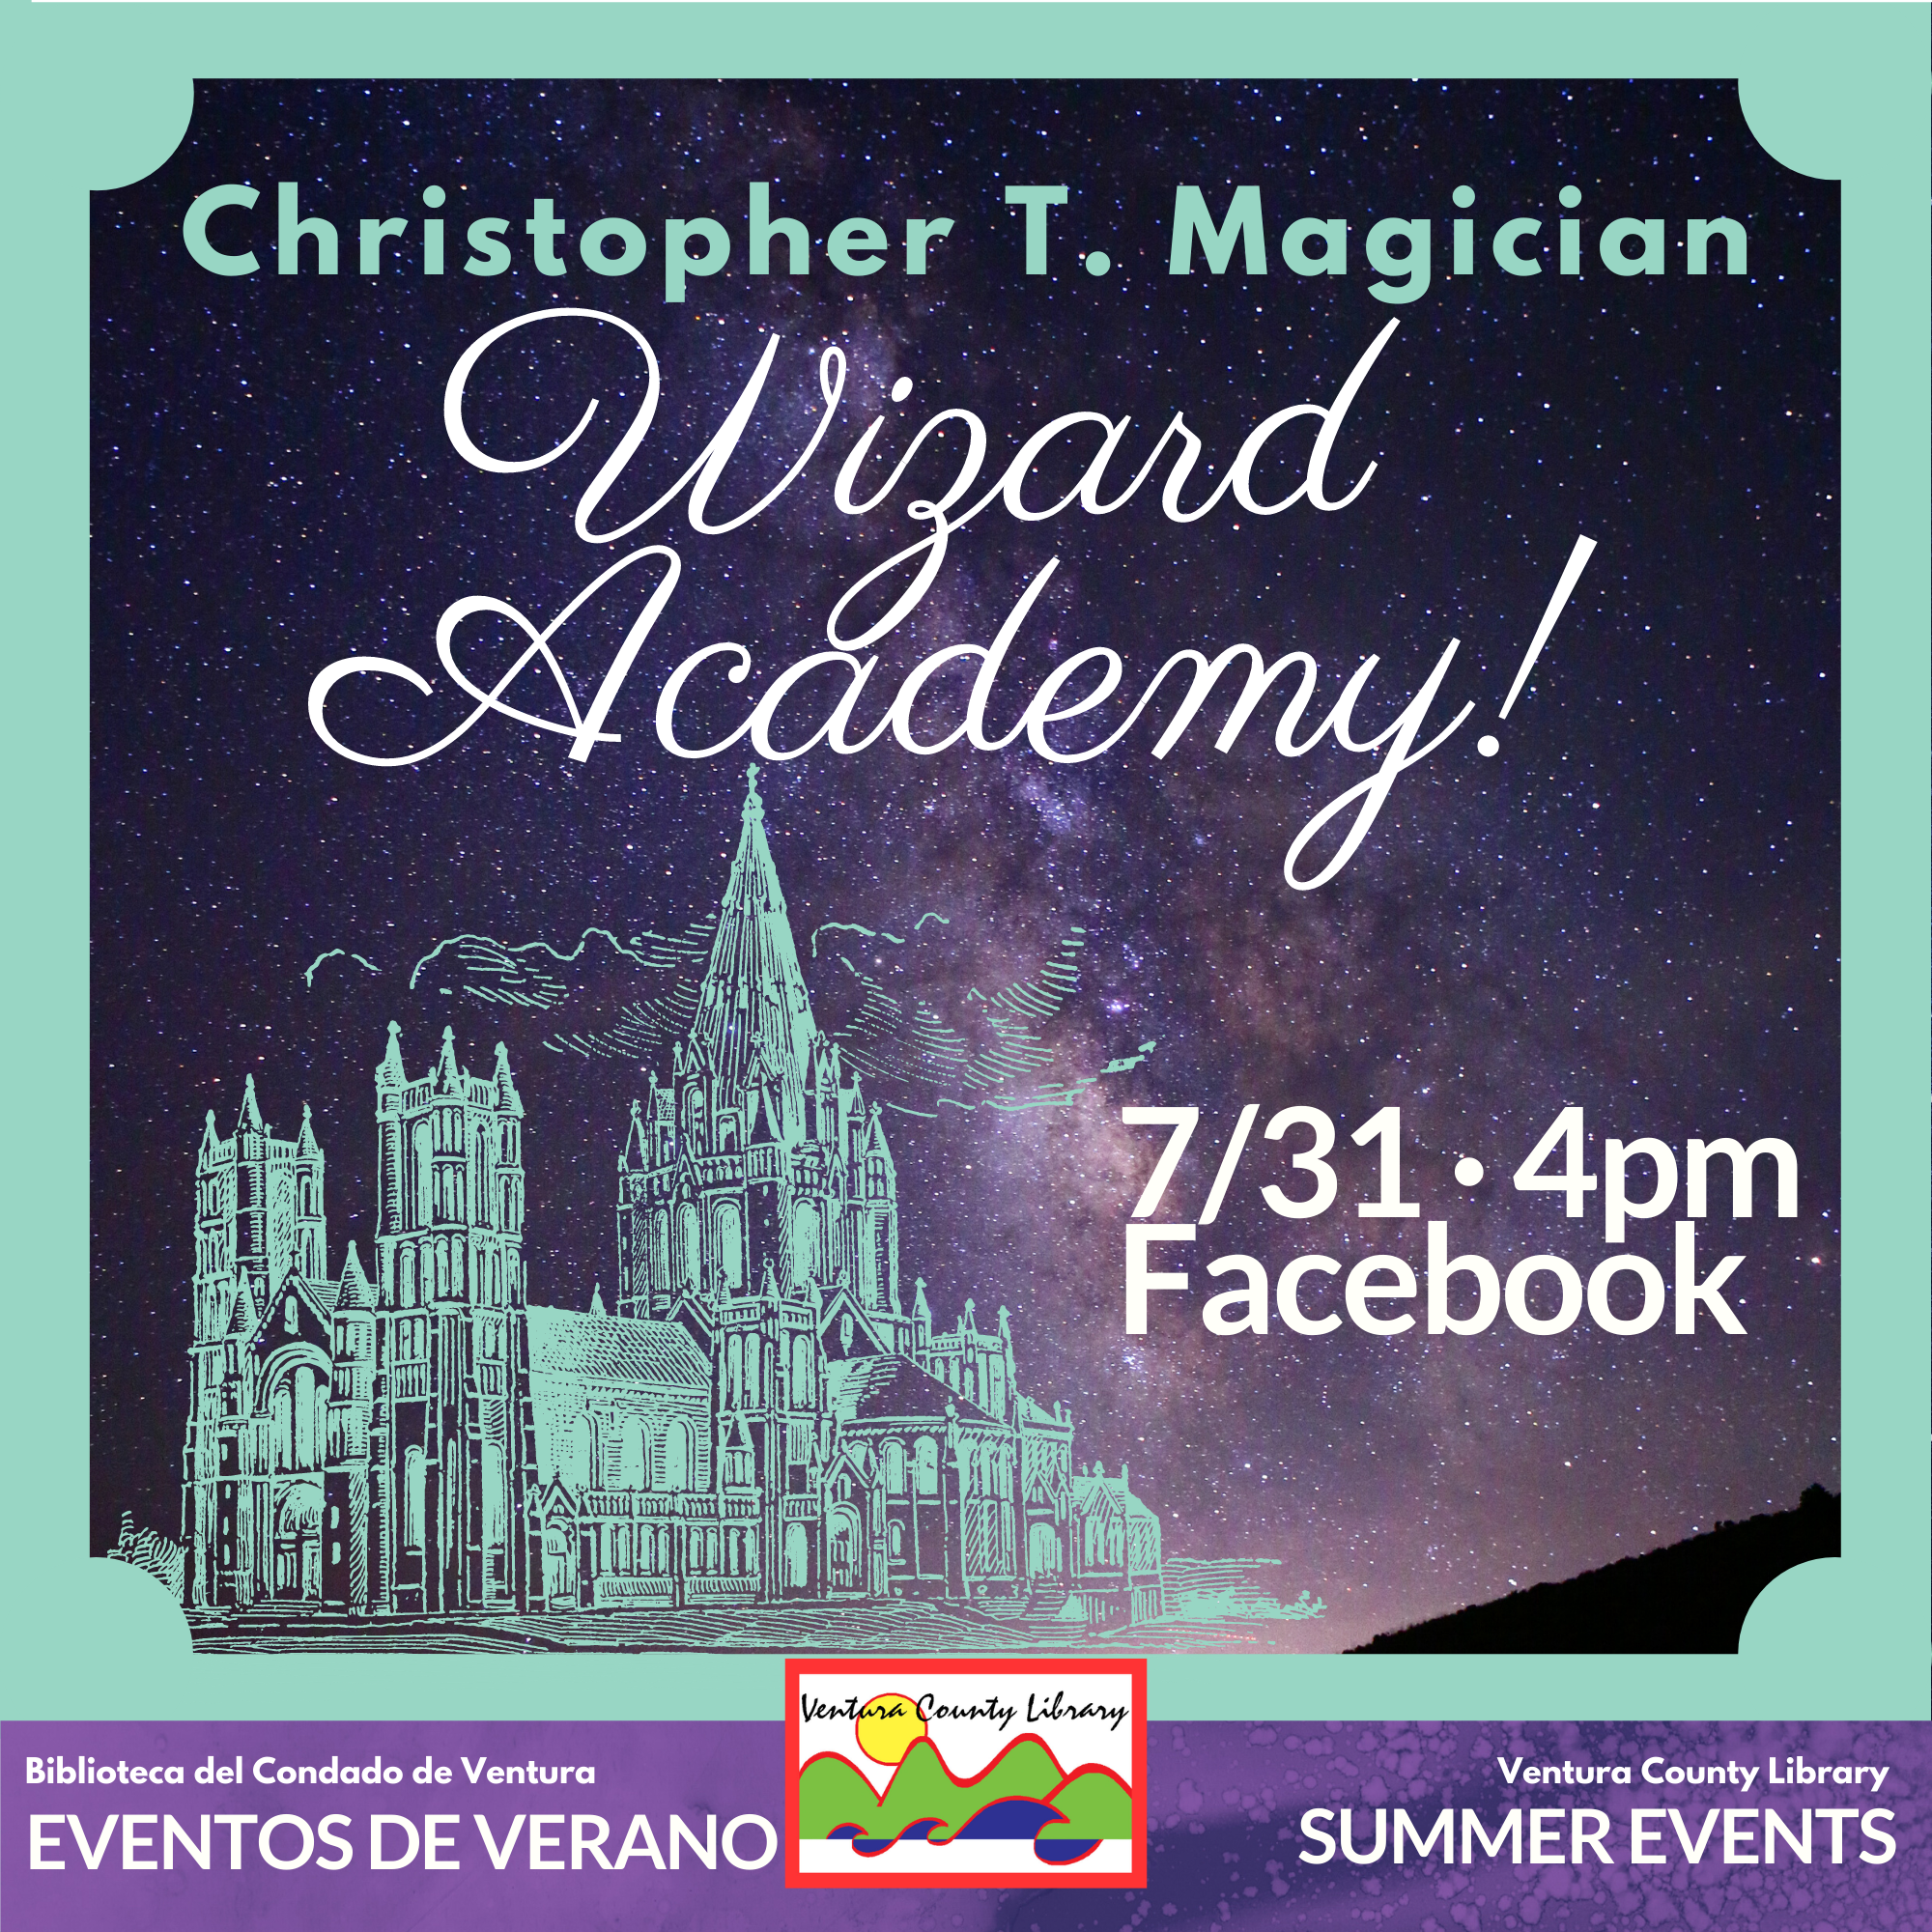 cartoon castle is depicted against a night sky. Text reads Christopher T Magician wizard Academy 7/31 at 4 pm on Facebook